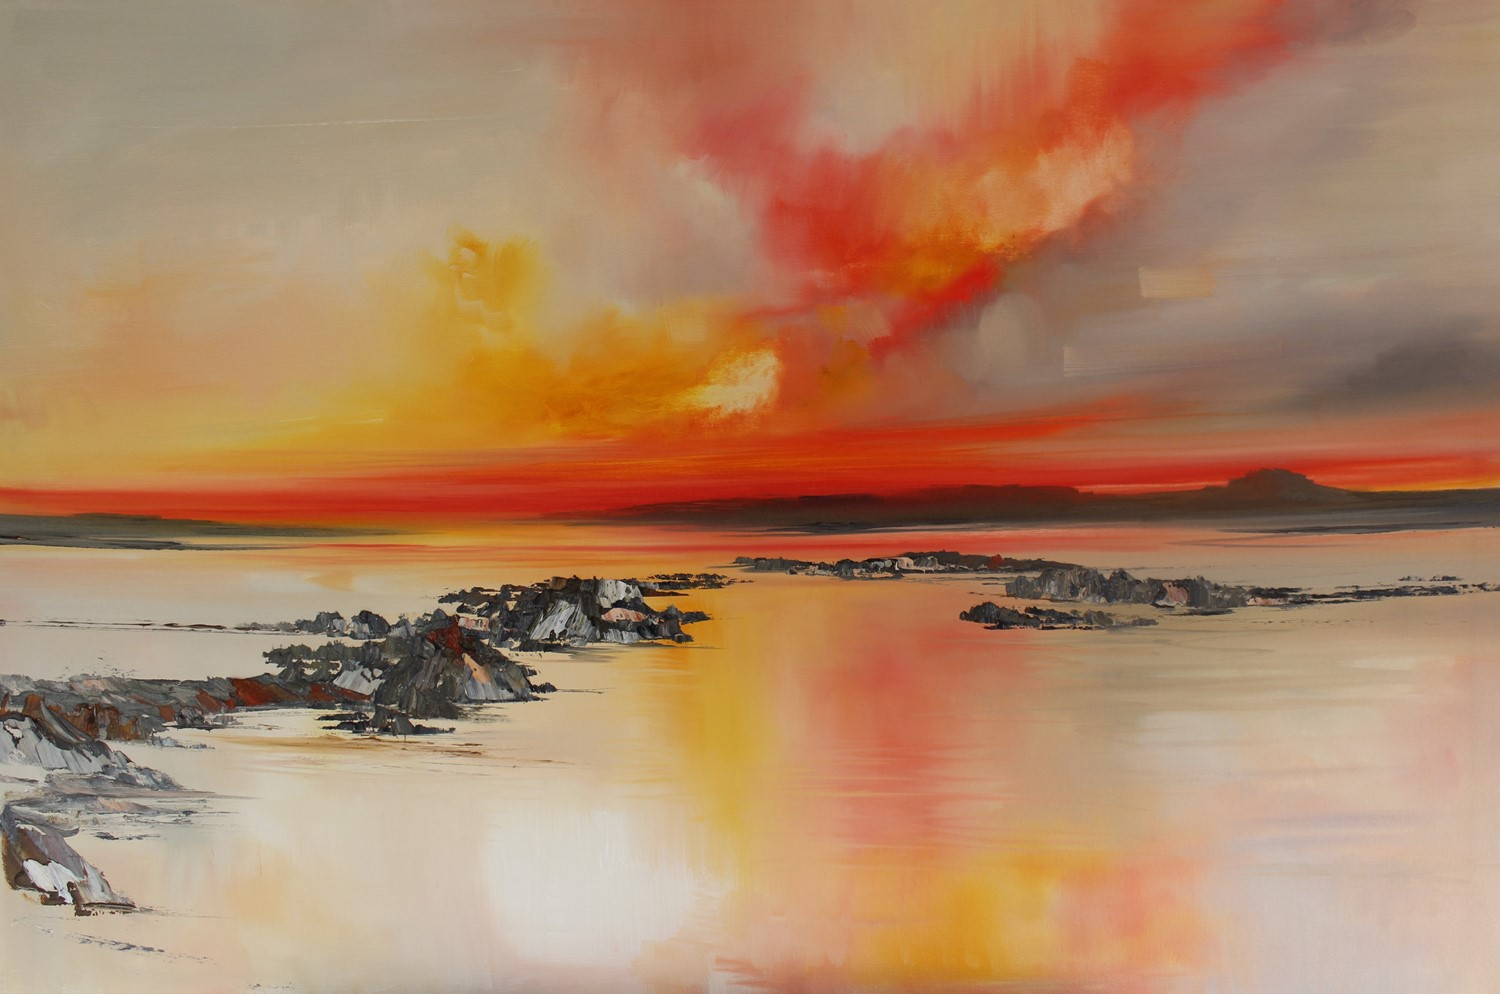 'Like a fire in the sky' by artist Rosanne Barr